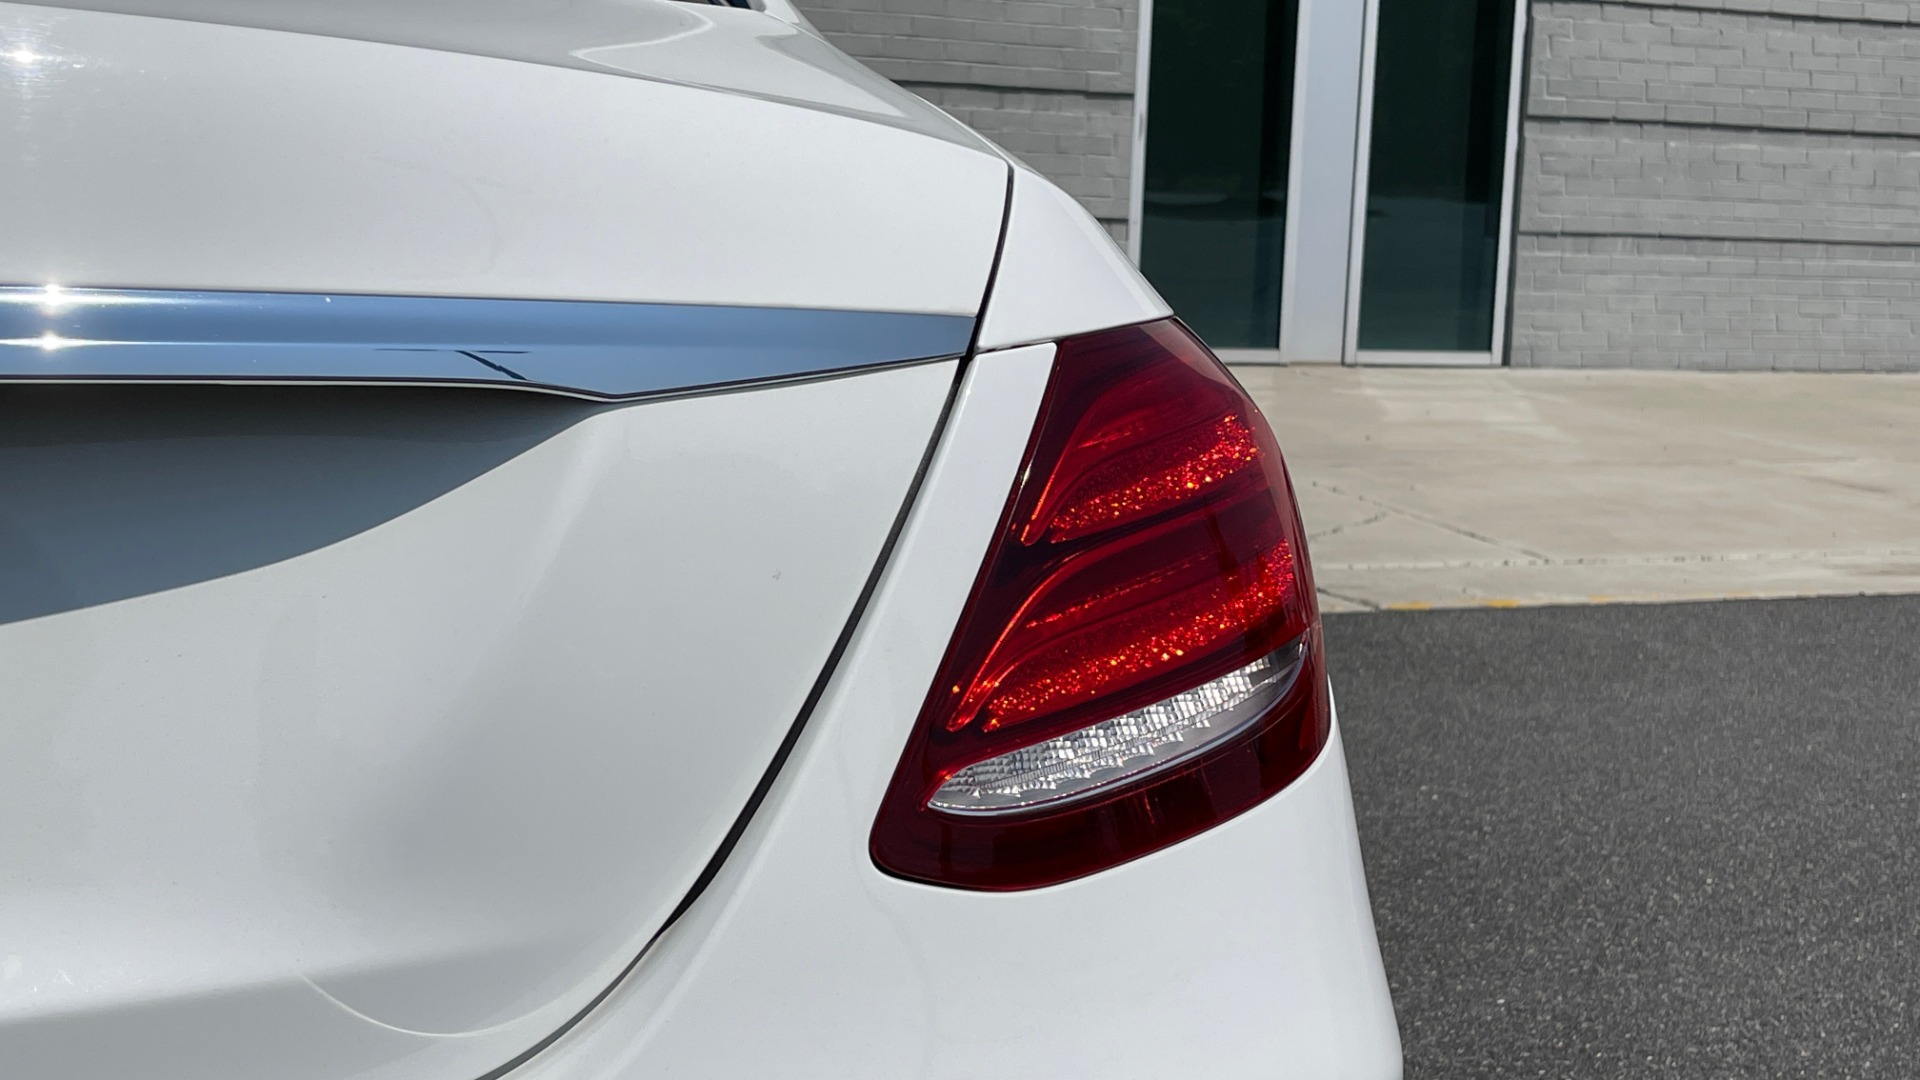 Used 2018 Mercedes-Benz E-CLASS E 300 / 2.0L I4 TURBO / NAV / BSA / SUNROOF / REARVIEW for sale Sold at Formula Imports in Charlotte NC 28227 21